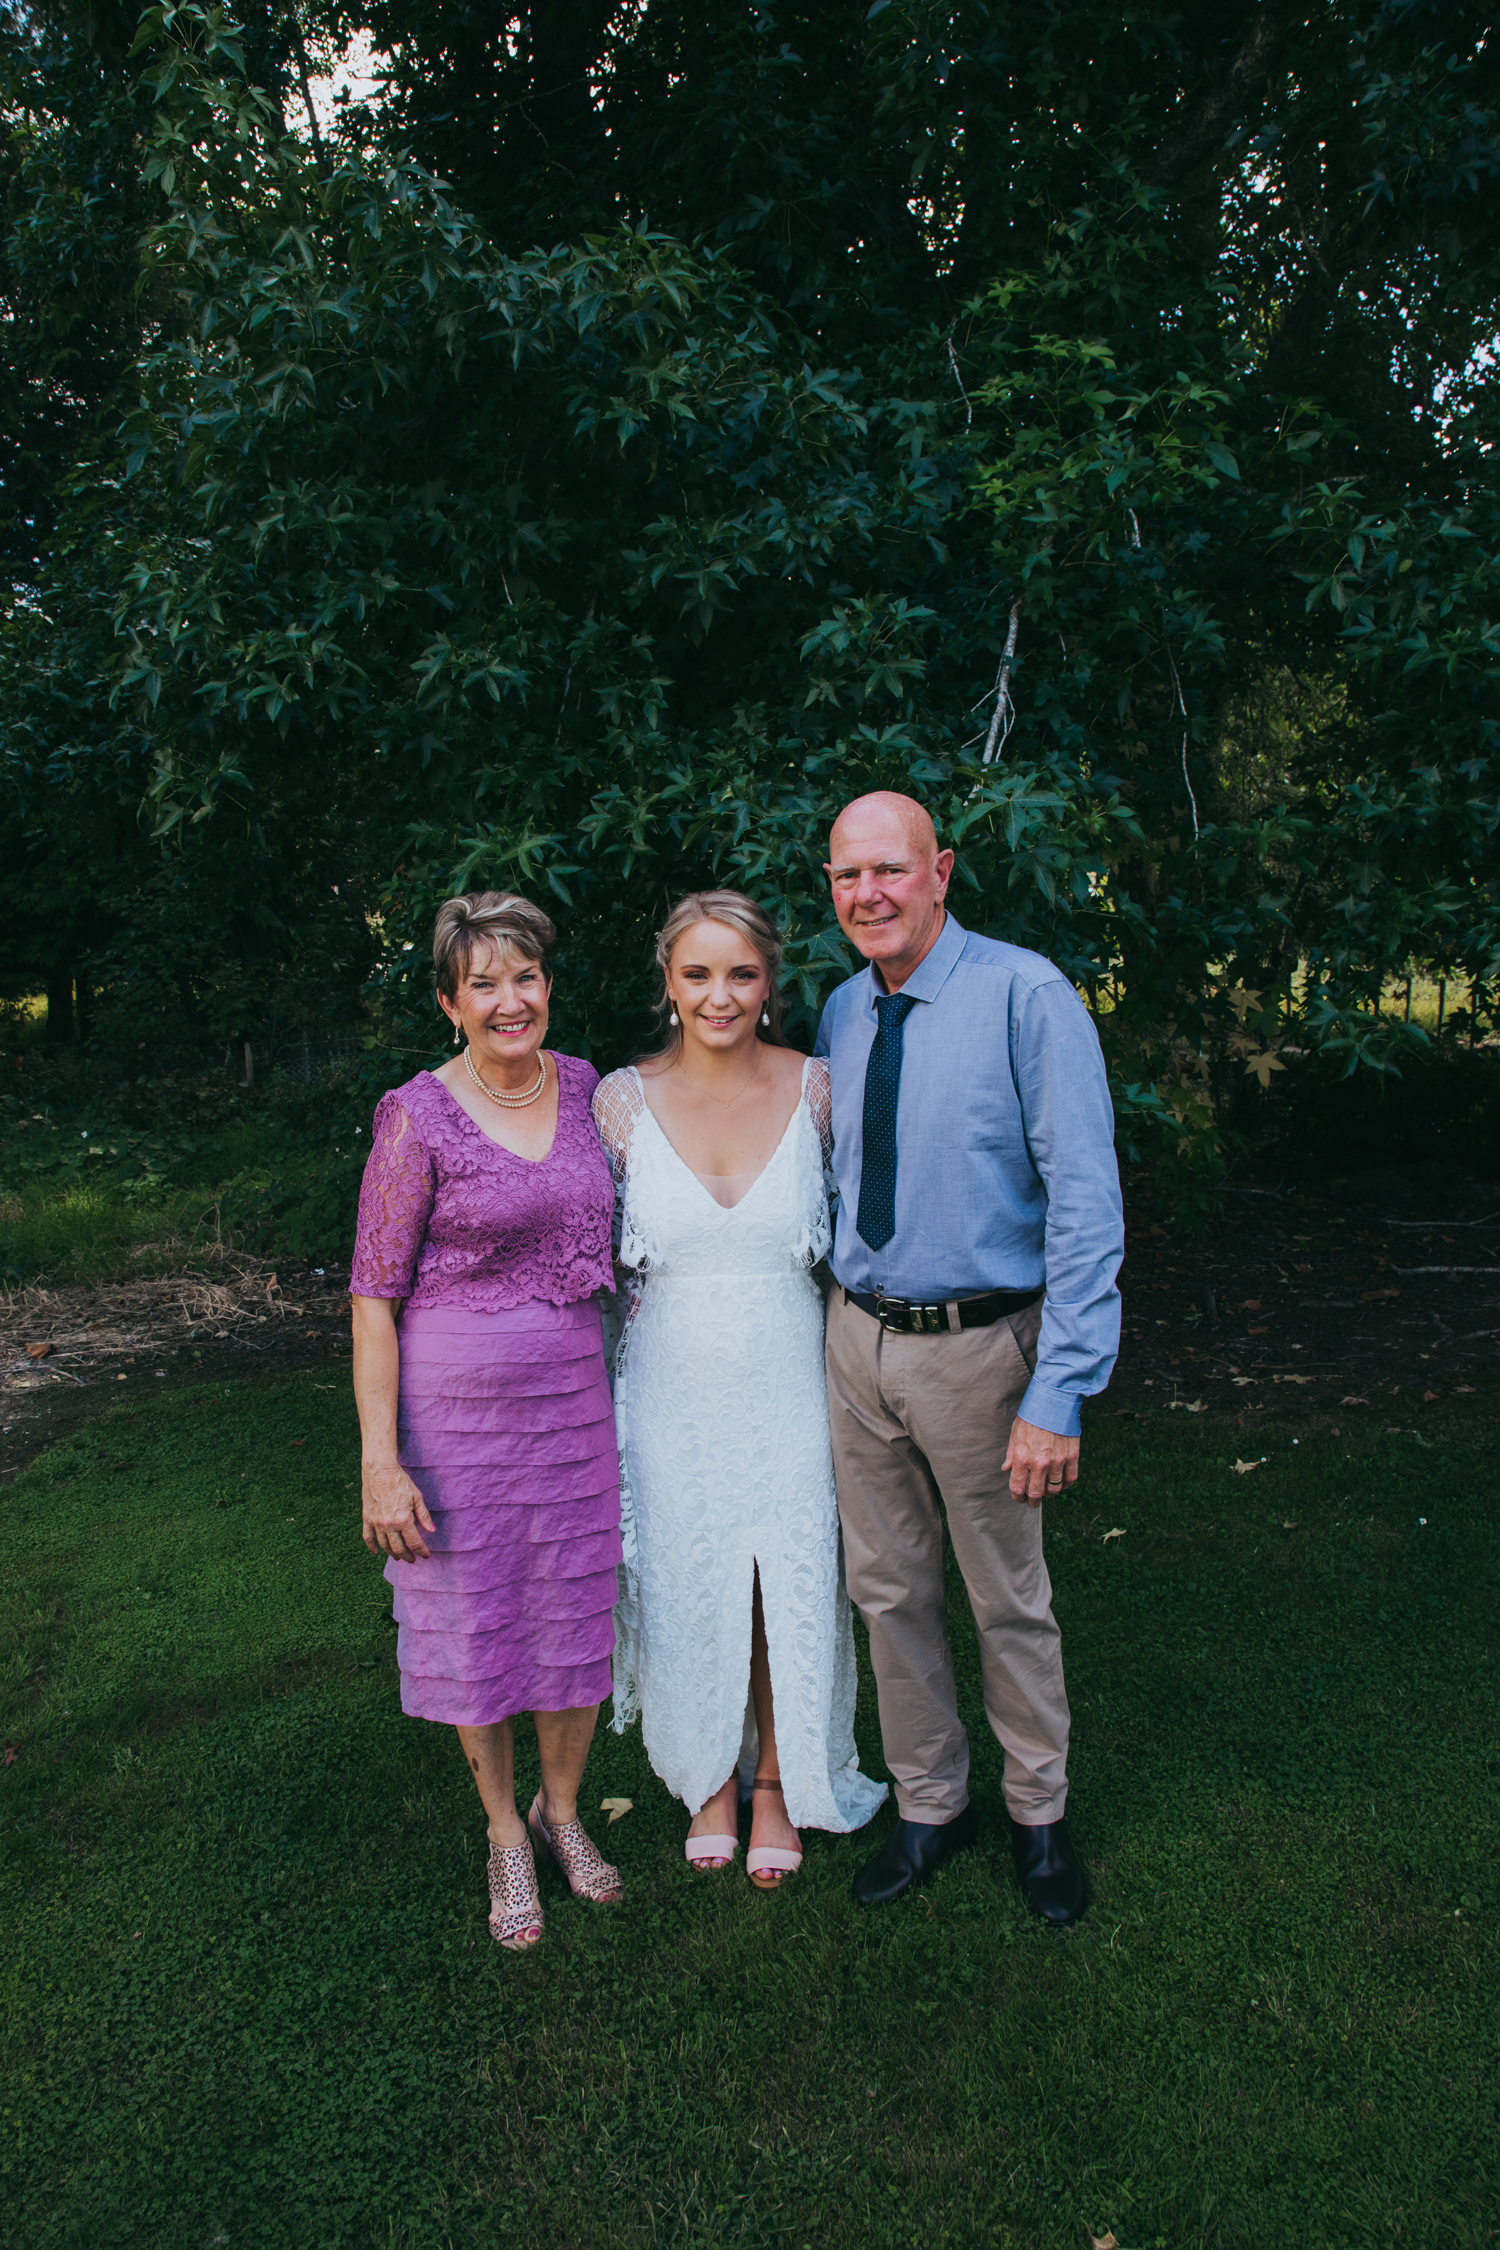 waikato-new-zealand-wedding-photographer-summer-rural-wedding-grace-loves-lace-dress-bride-with-her-parents.jpg